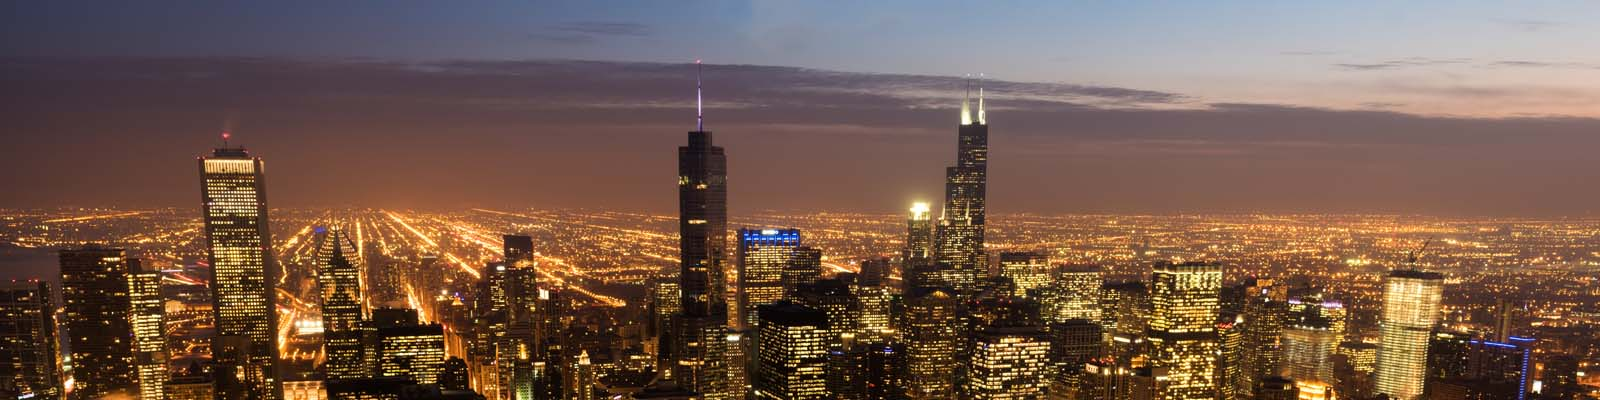 Pictured: A cityscape of Chicago, Illinois.